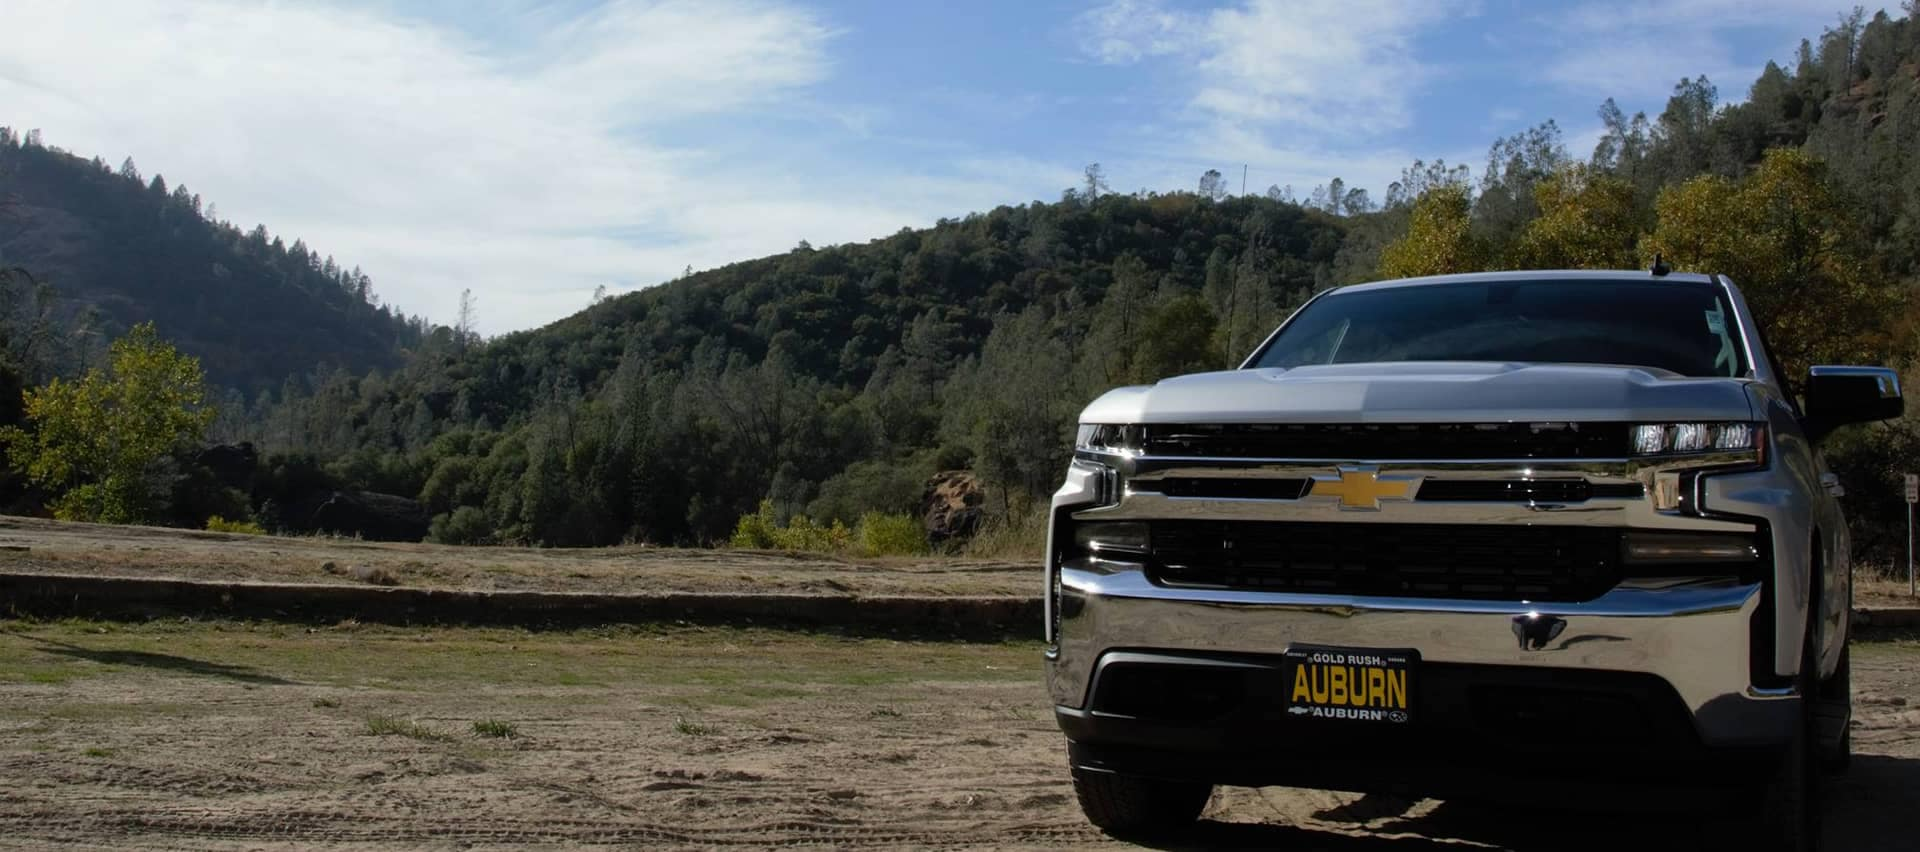 Chevy truck with Auburn license parked in dirt with wooded hills in background